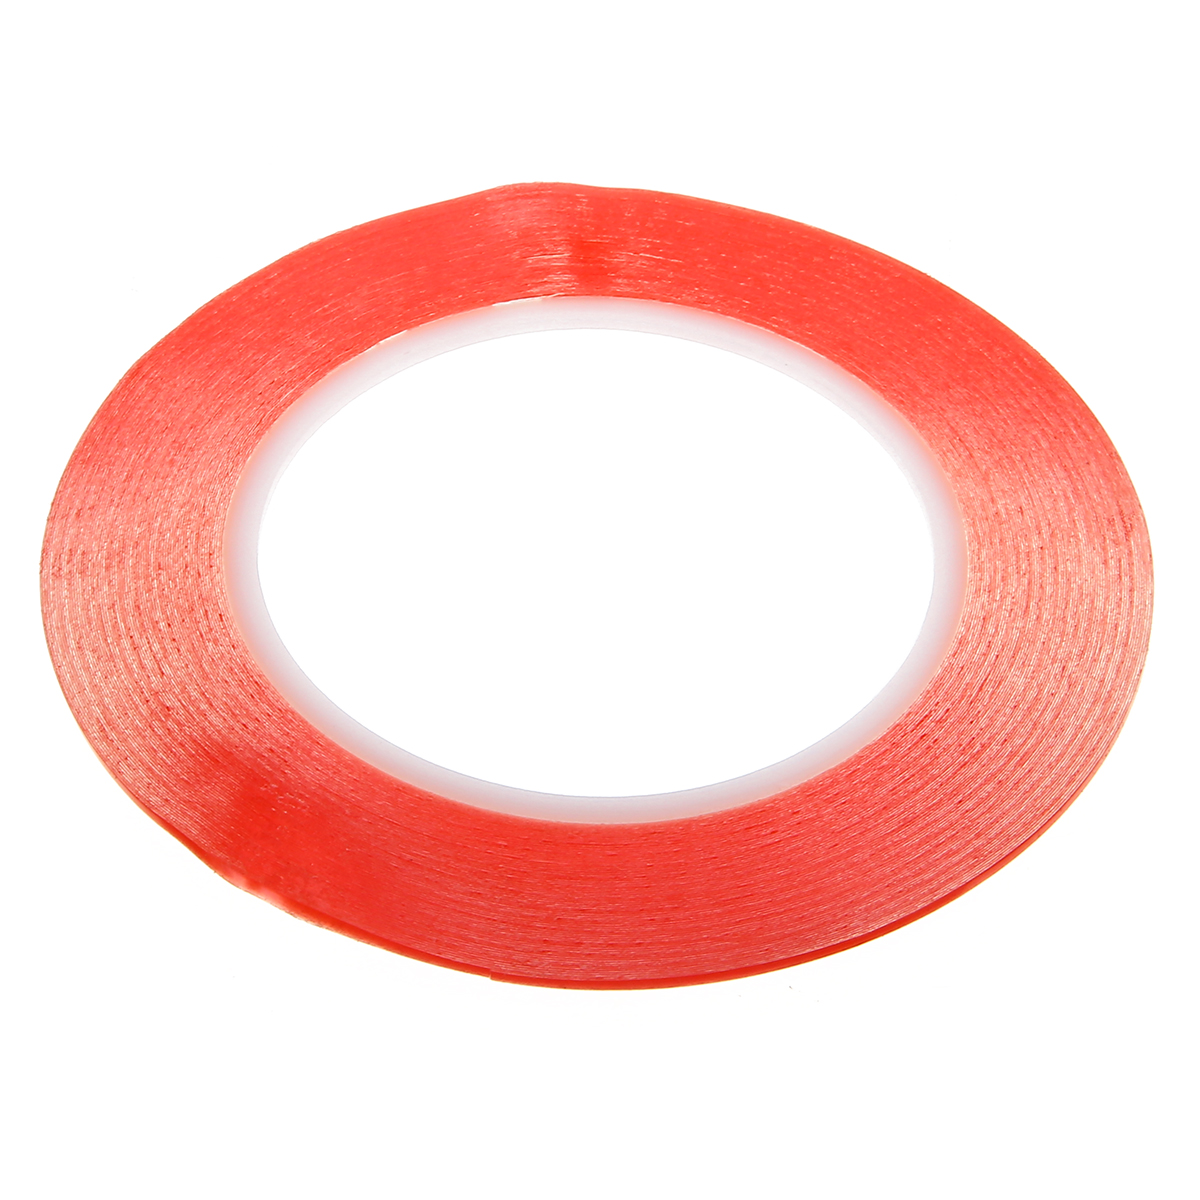 New Transparent Double Side Adhesive Tape 25M Red Film Sticky Adhesive Tape Cell Phone Repair Width 2mm/3mm/5mm/8mm/10mm